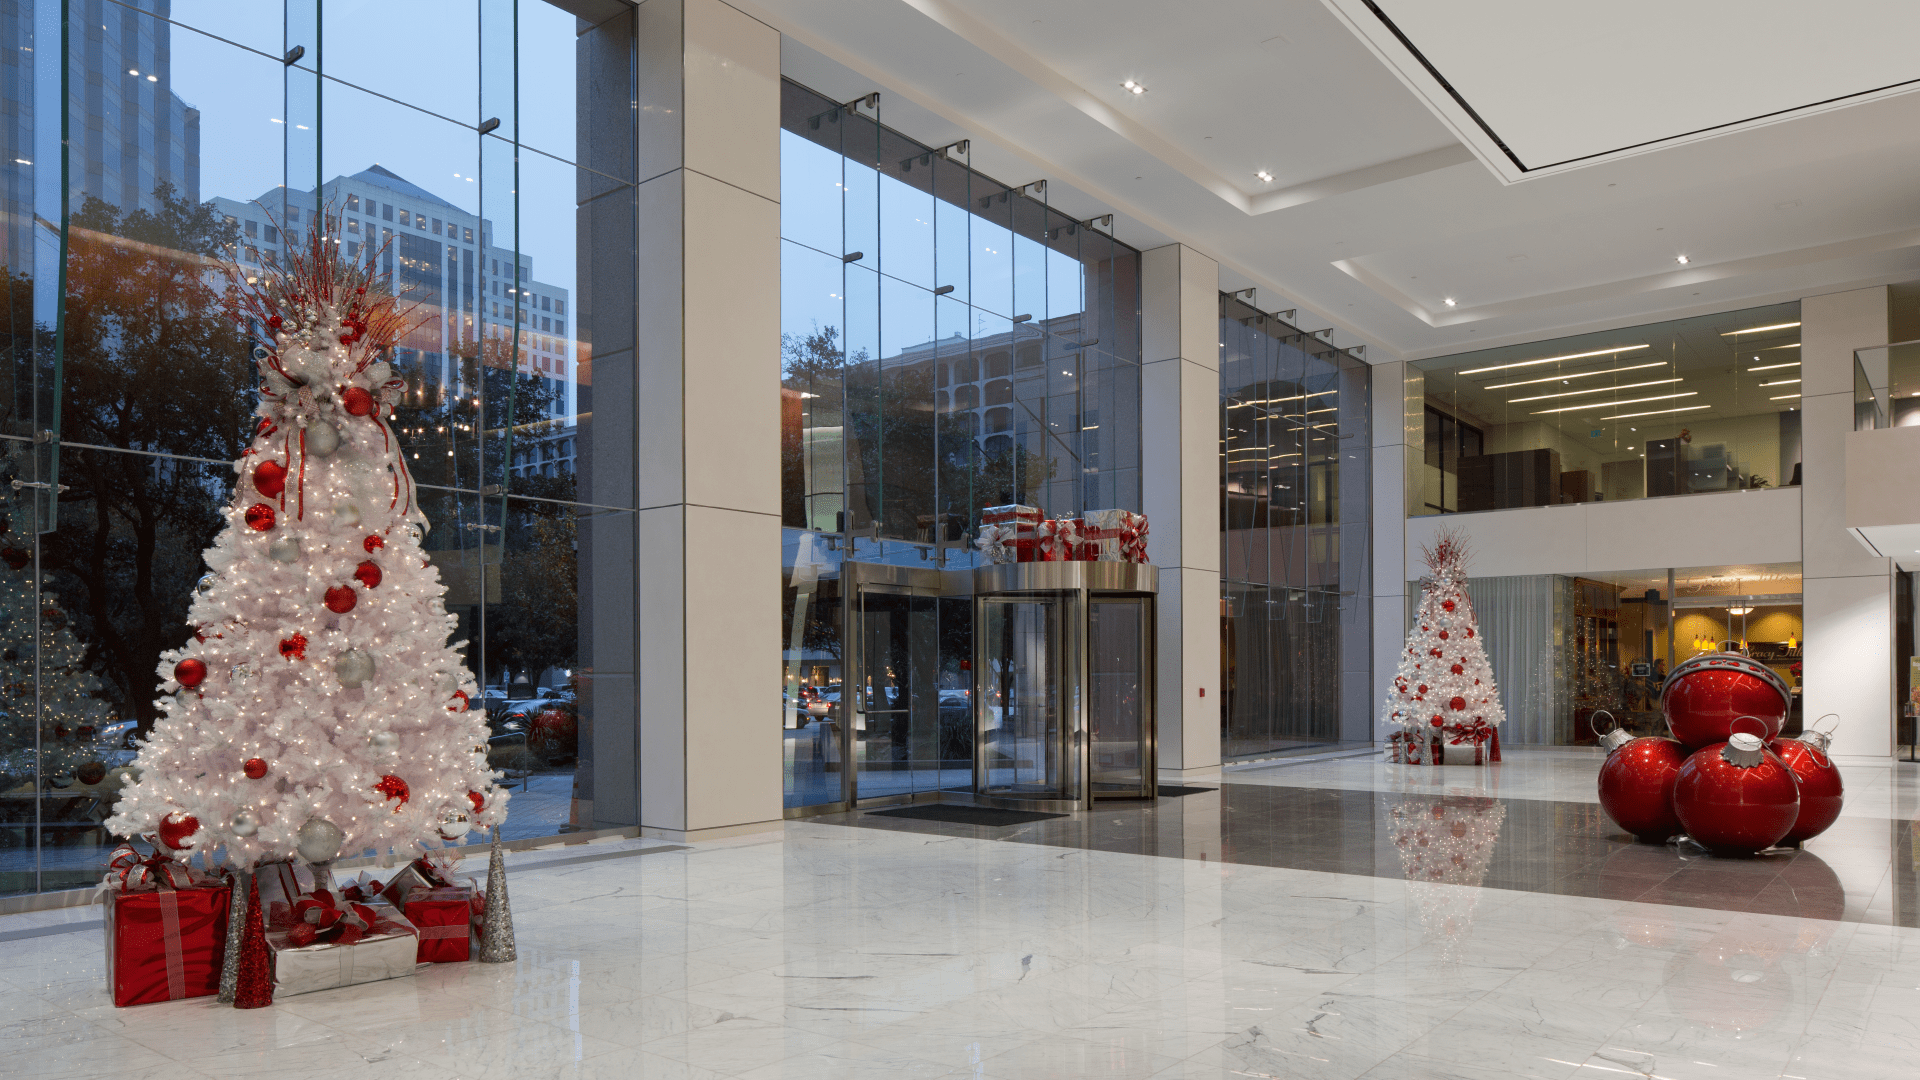 Contemporary Christmas Decorations for Office Lobby